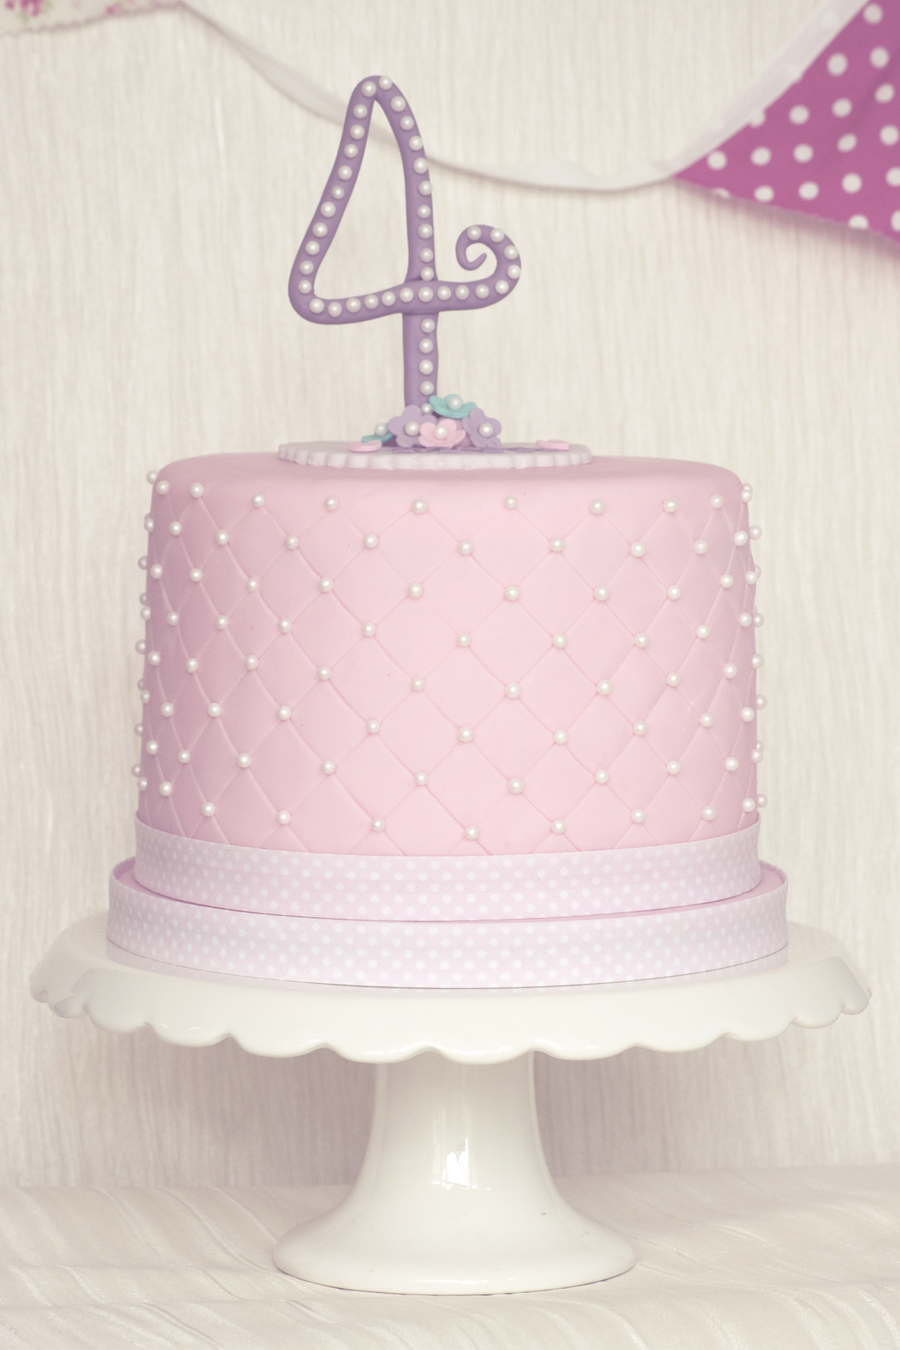 Brilliant 4Th Birthday Cake Girl Cakecentral Com Birthday Cards Printable Benkemecafe Filternl